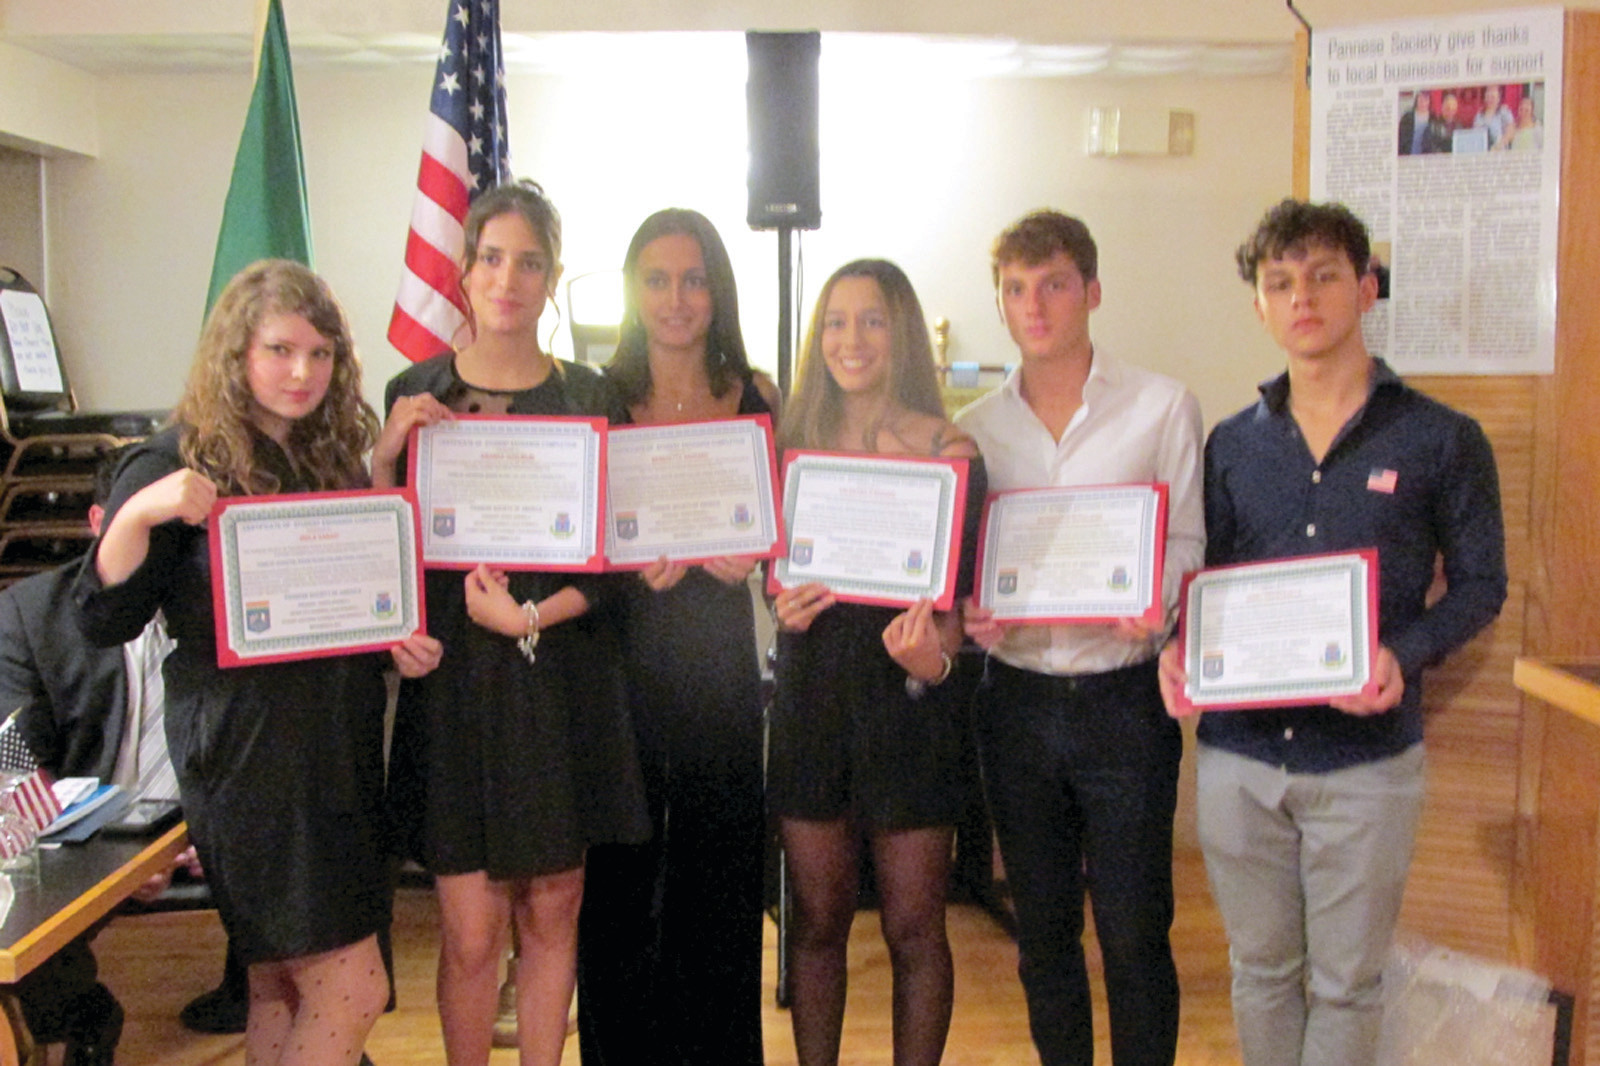 "GRAND GUESTS: The students from Panni Foggia, Italy, who for the past two weeks have been in Johnston – and Rhode Island – as part of Phase One of the Pannese Society's Sister City Exchange Program, show off their spiffy awards during last week's welcome dinner. The students are, from left: Viola Farao, Arianna Guglielmi, Benedetta Nazzaro, Valentina DaAdduzio, Antongiulio Rutigliano and ""Jerry"" Francavilla."